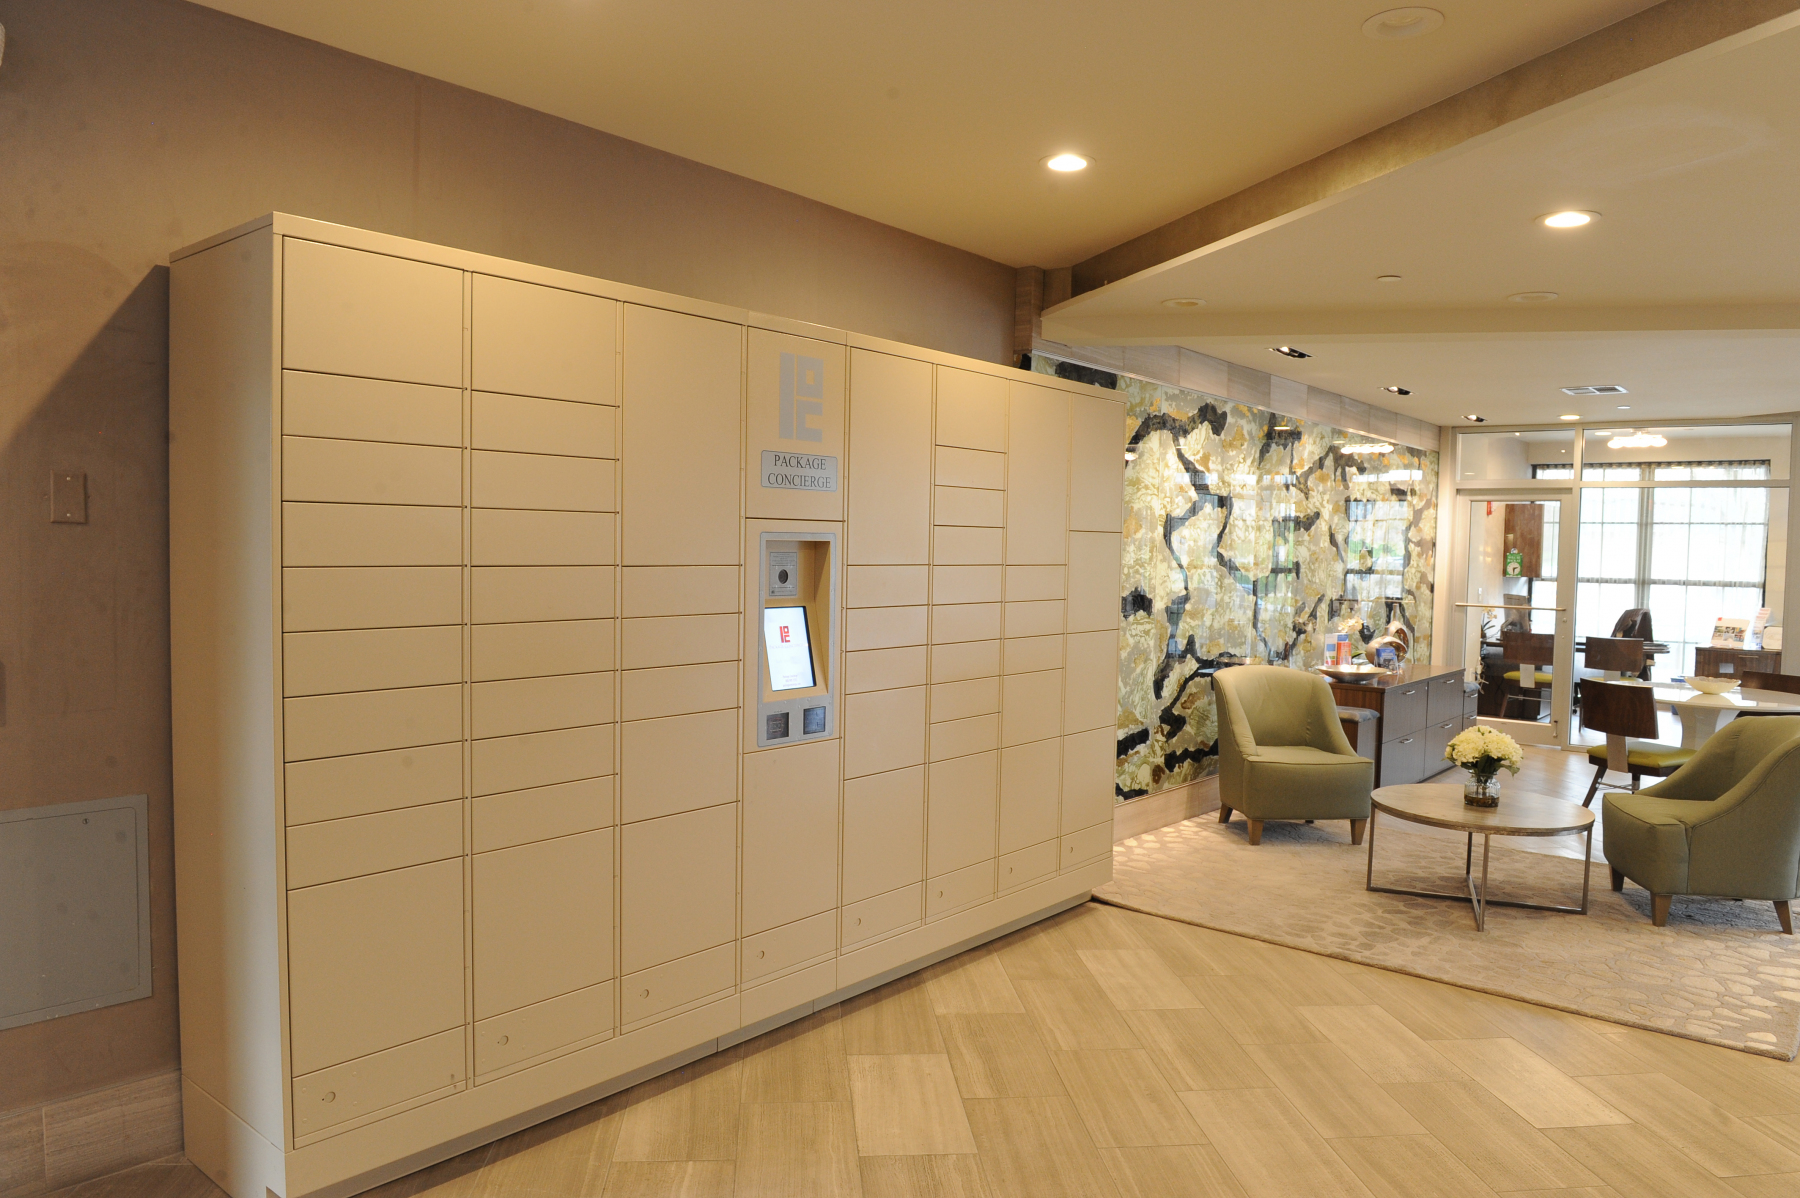 Automated package locker in lobby